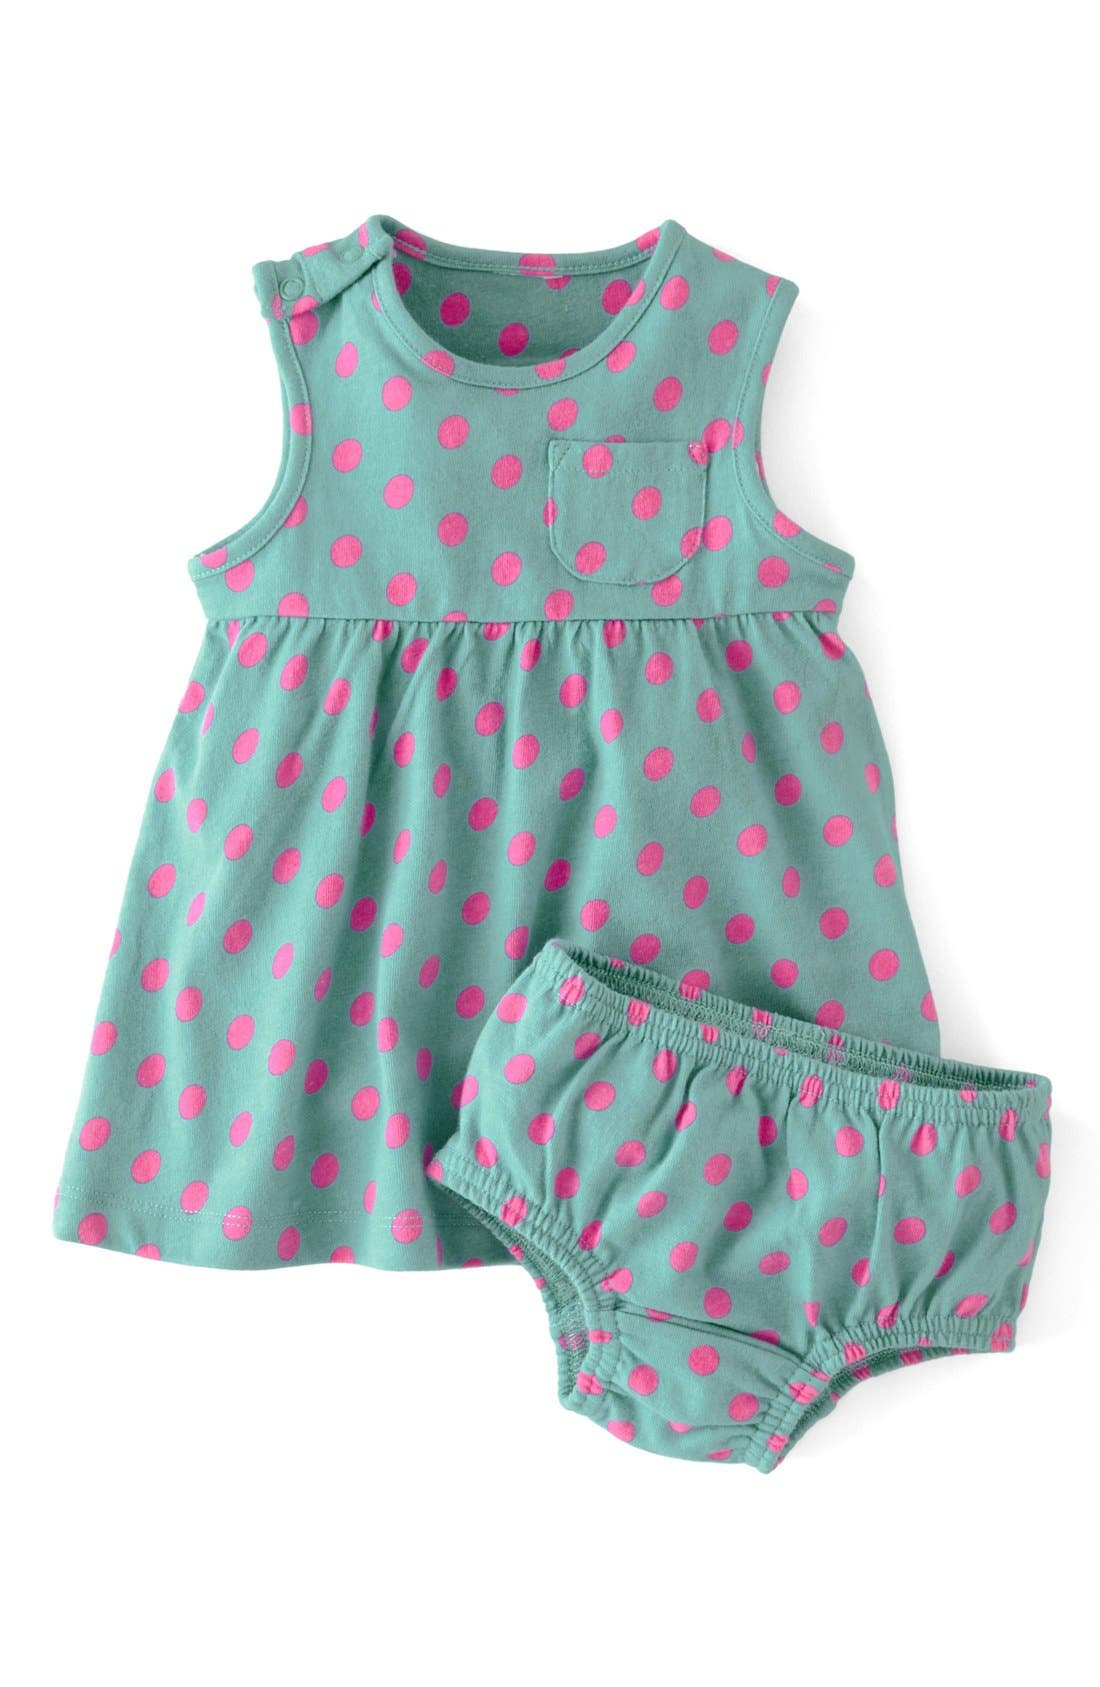 Alternate Image 1 Selected - Mini Boden Essential Spotty Jersey Dress (Baby Girls)